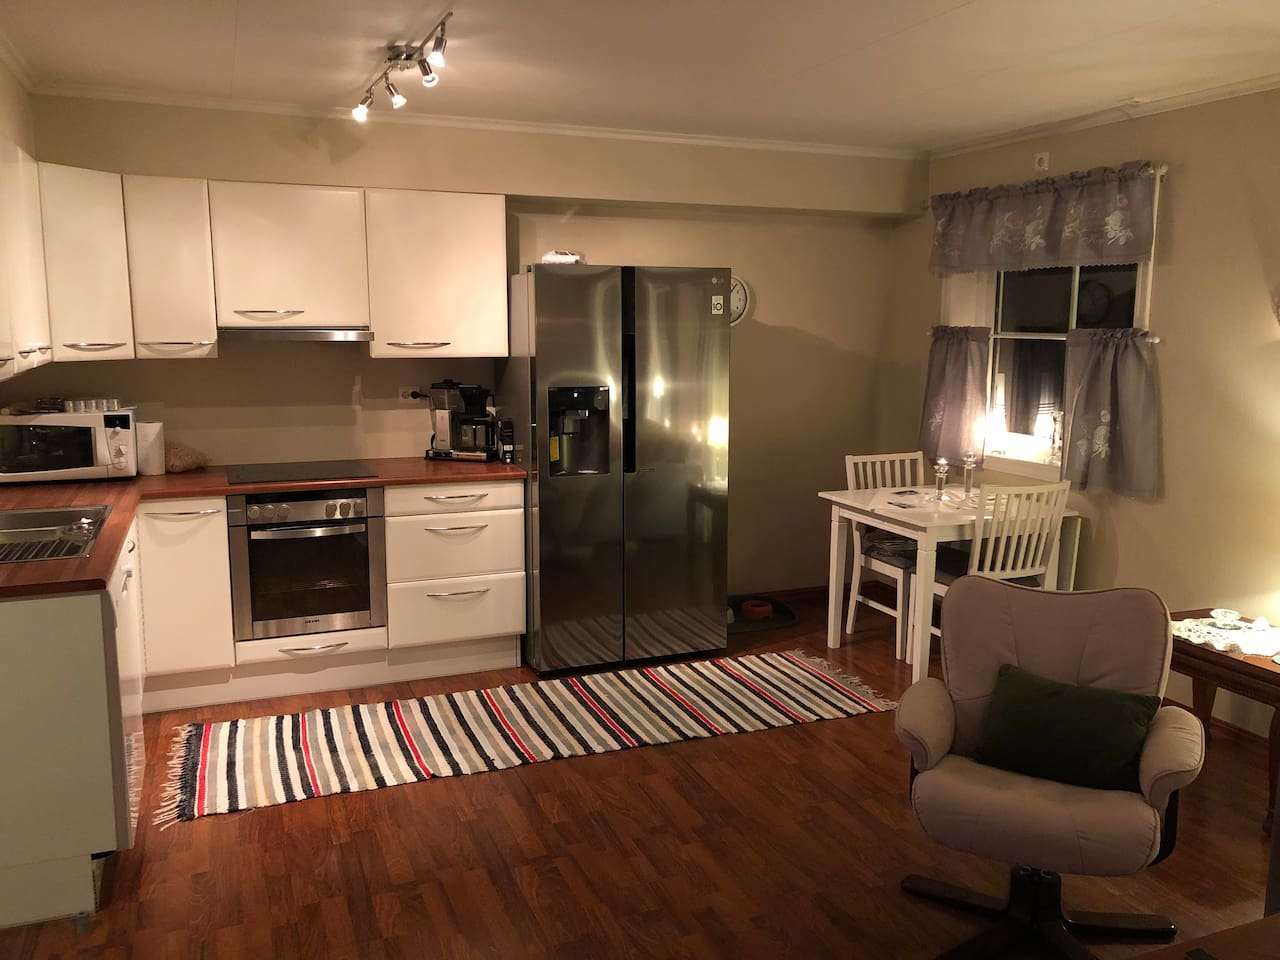 Livingroom/kitchen , layout/style can be changed due to upcoming renovation